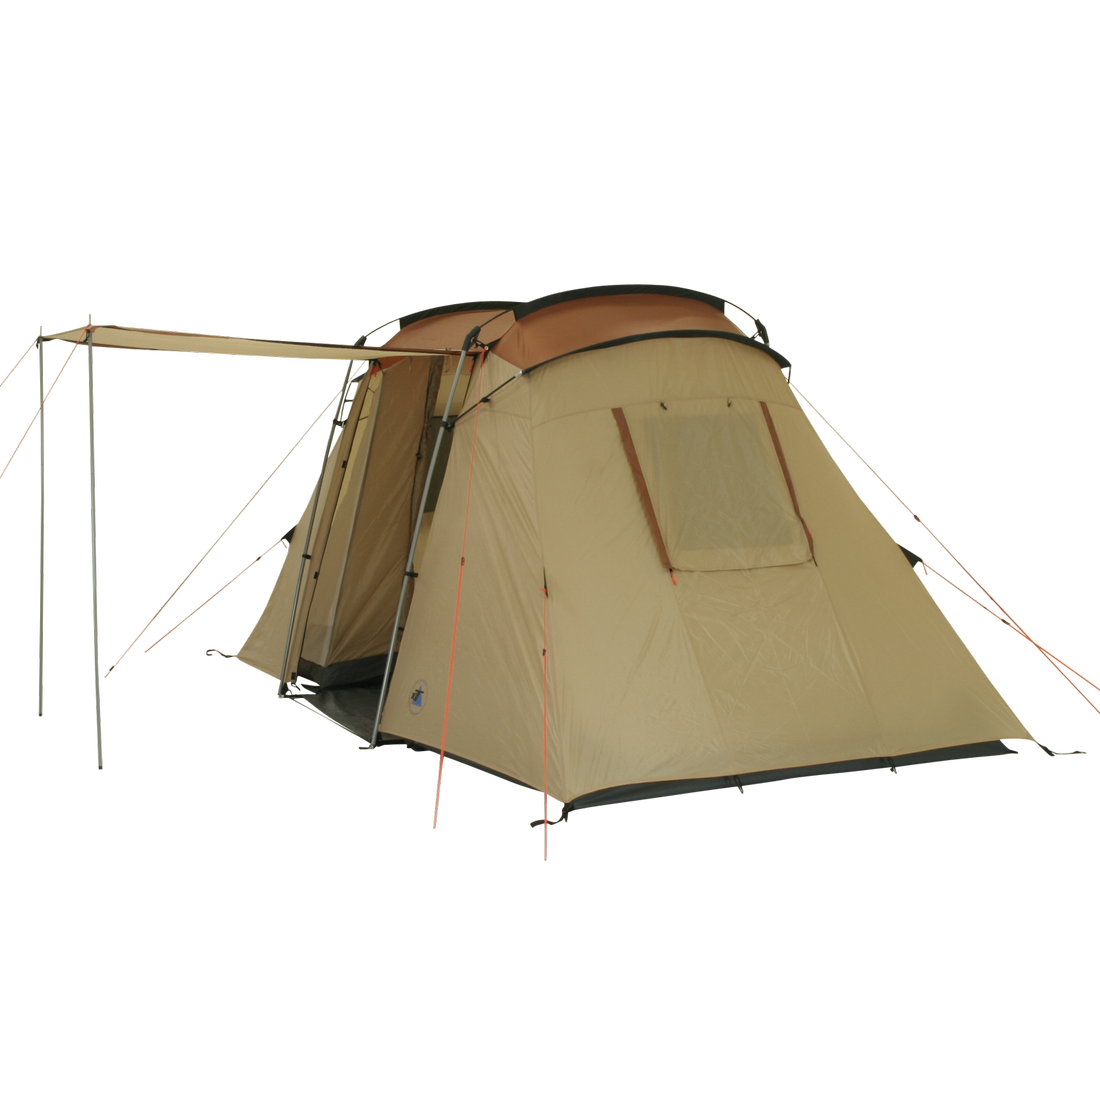 10t delano 4 4 person vis a vis tunnel tent 200 cm standing height ws 5000 m. Black Bedroom Furniture Sets. Home Design Ideas